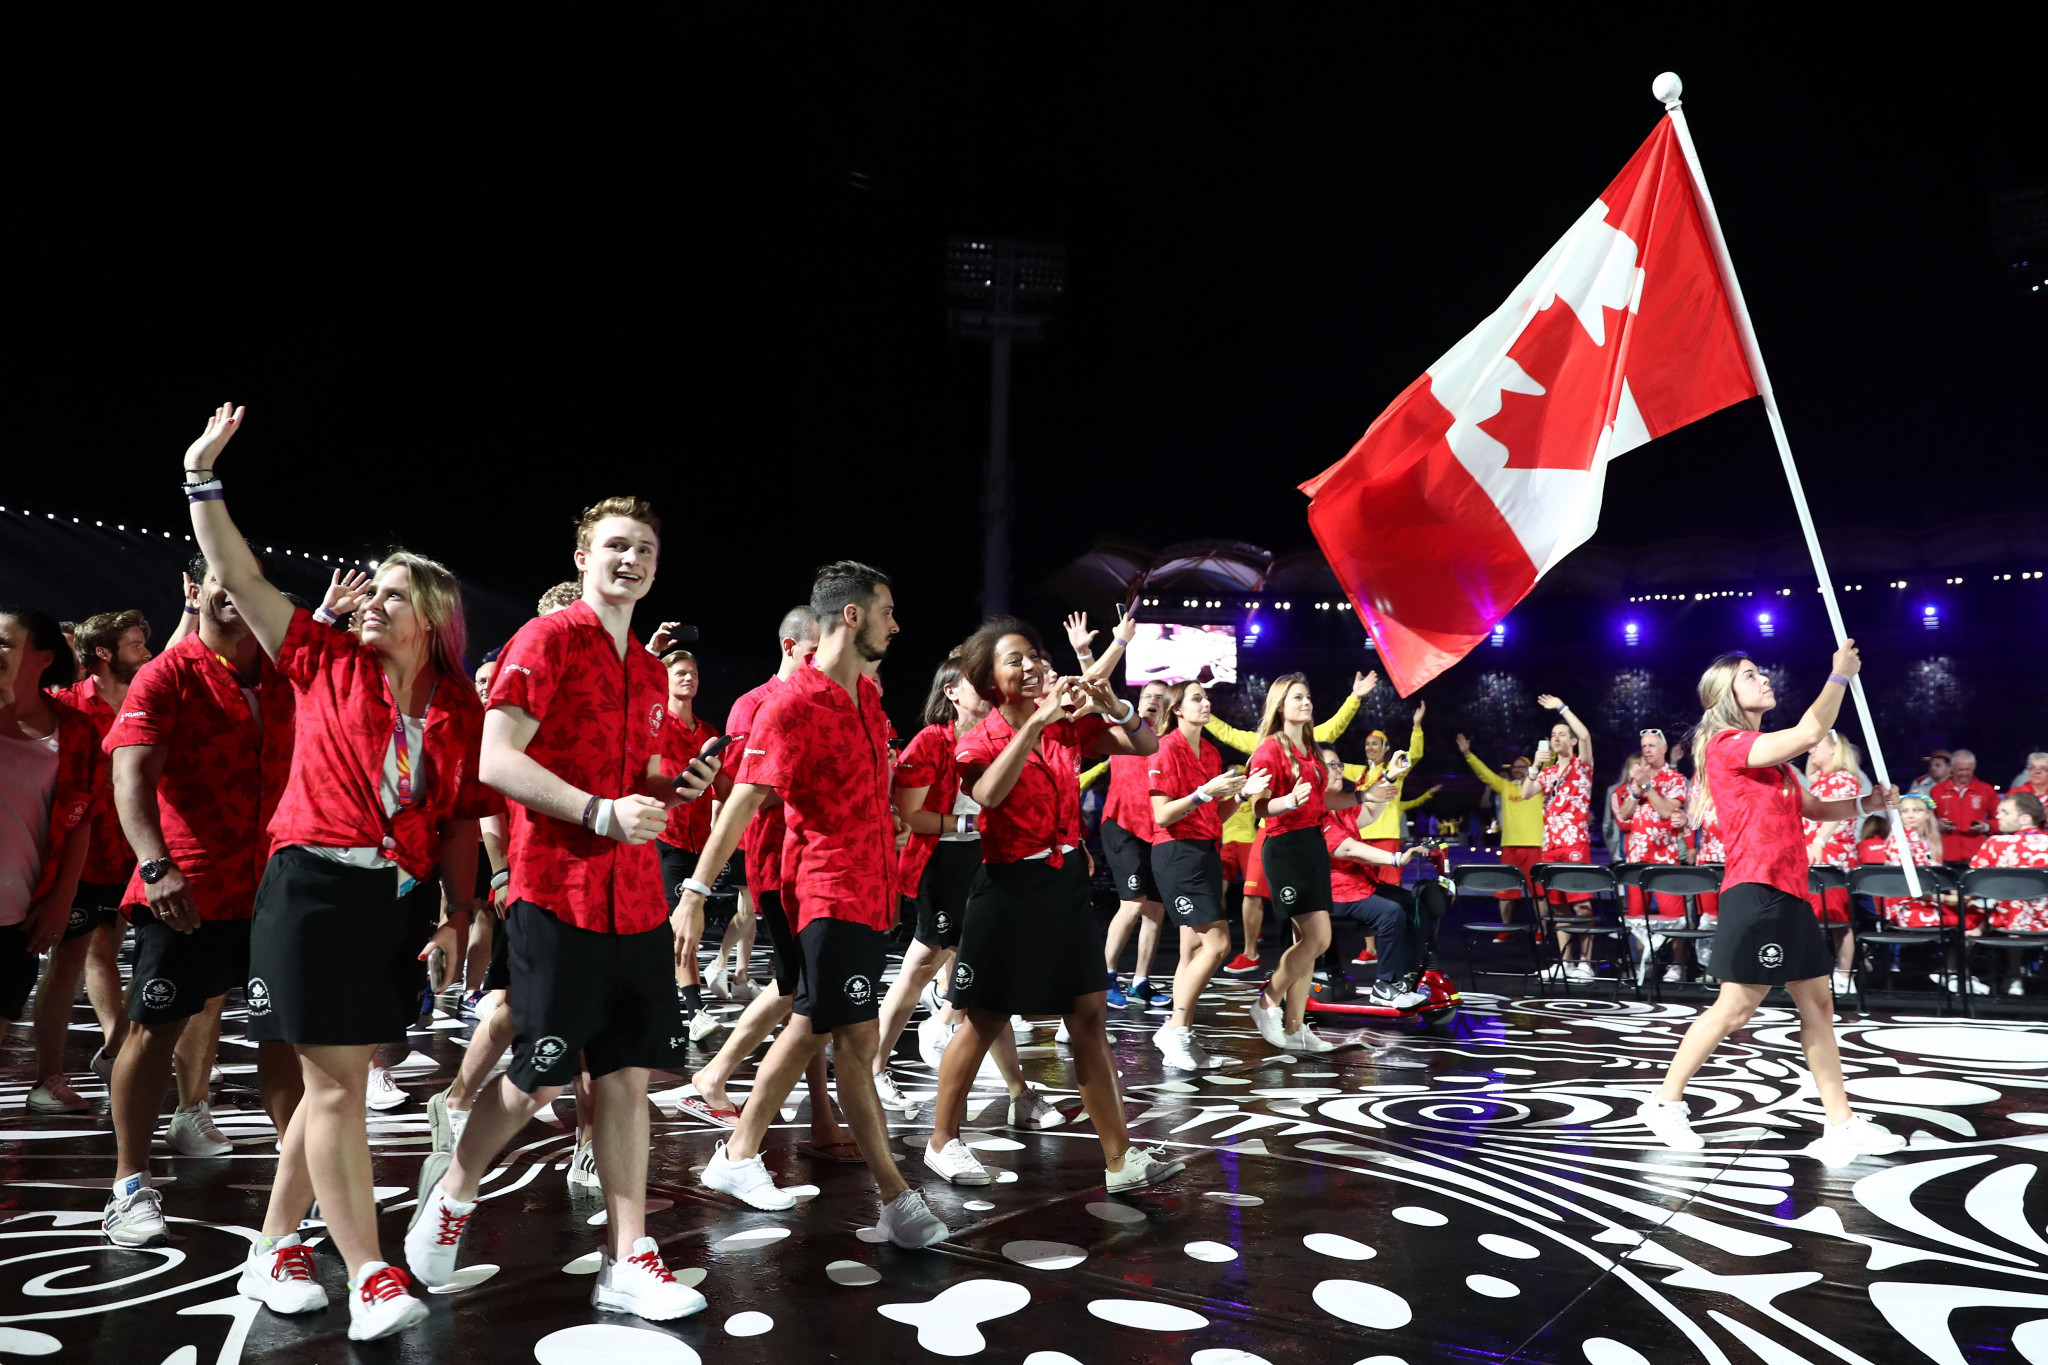 CGF welcome Canada interest as two community groups submit proposals for Commonwealth Games